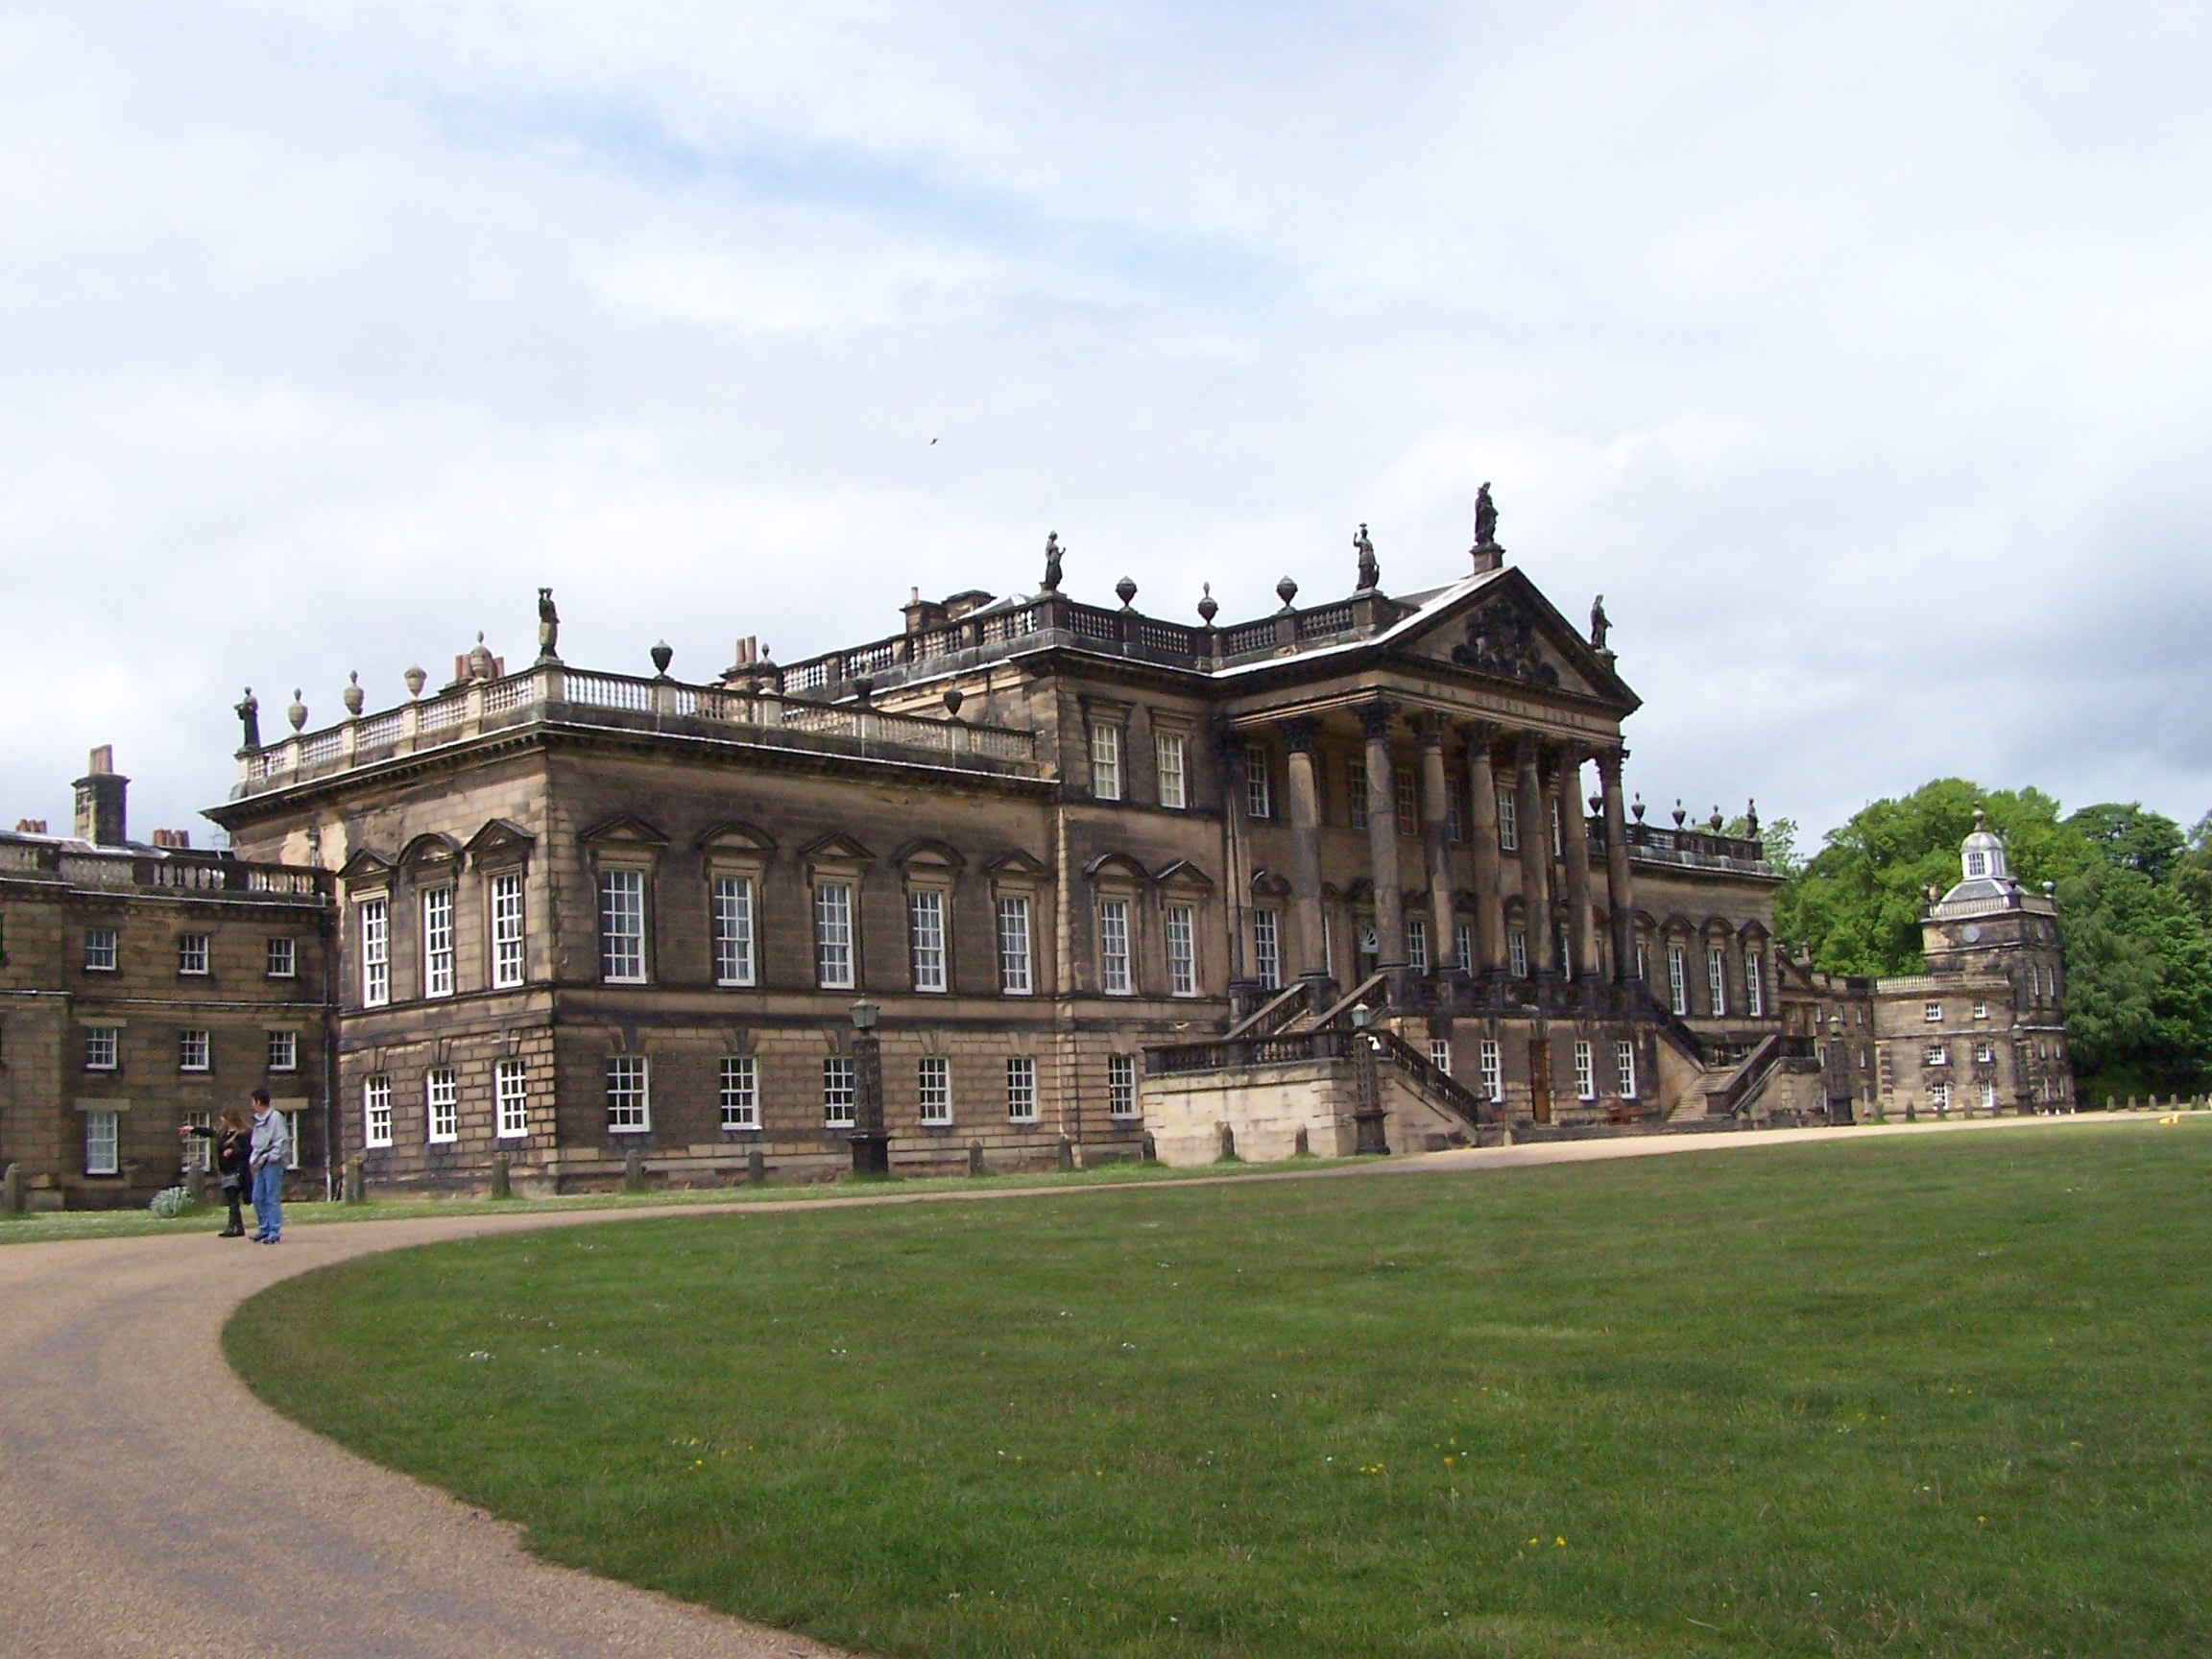 Marvelous Wentworth Woodhouse 310515 (6).JPG